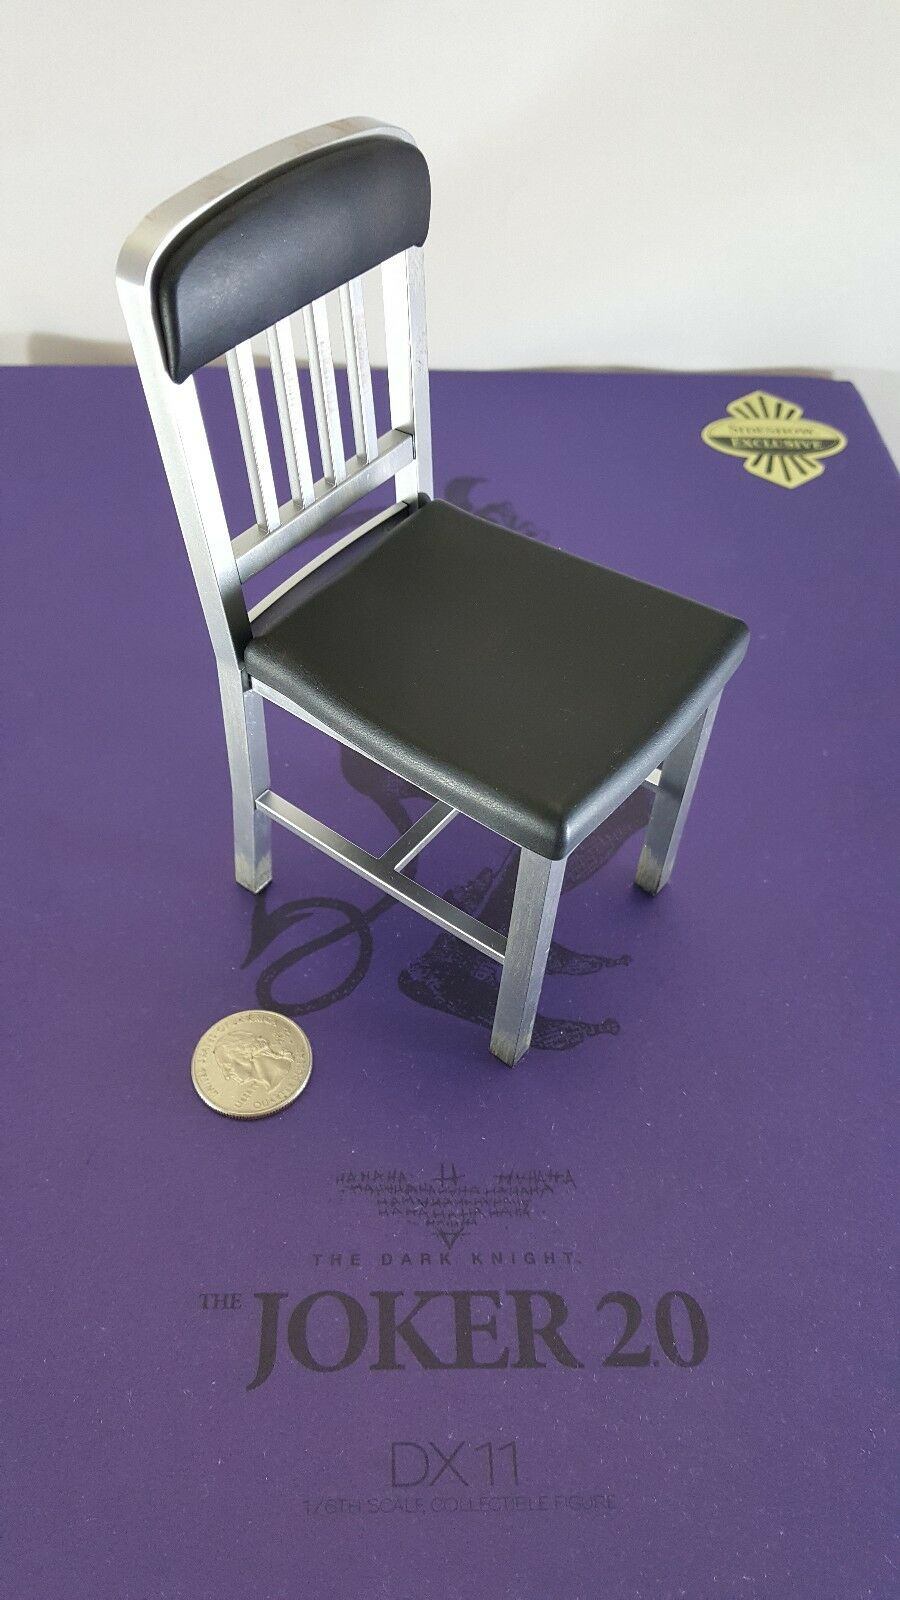 Hot Toys Exclusive DX11 Dark Knight 1/6 Joker 2.0 action figure's chair only